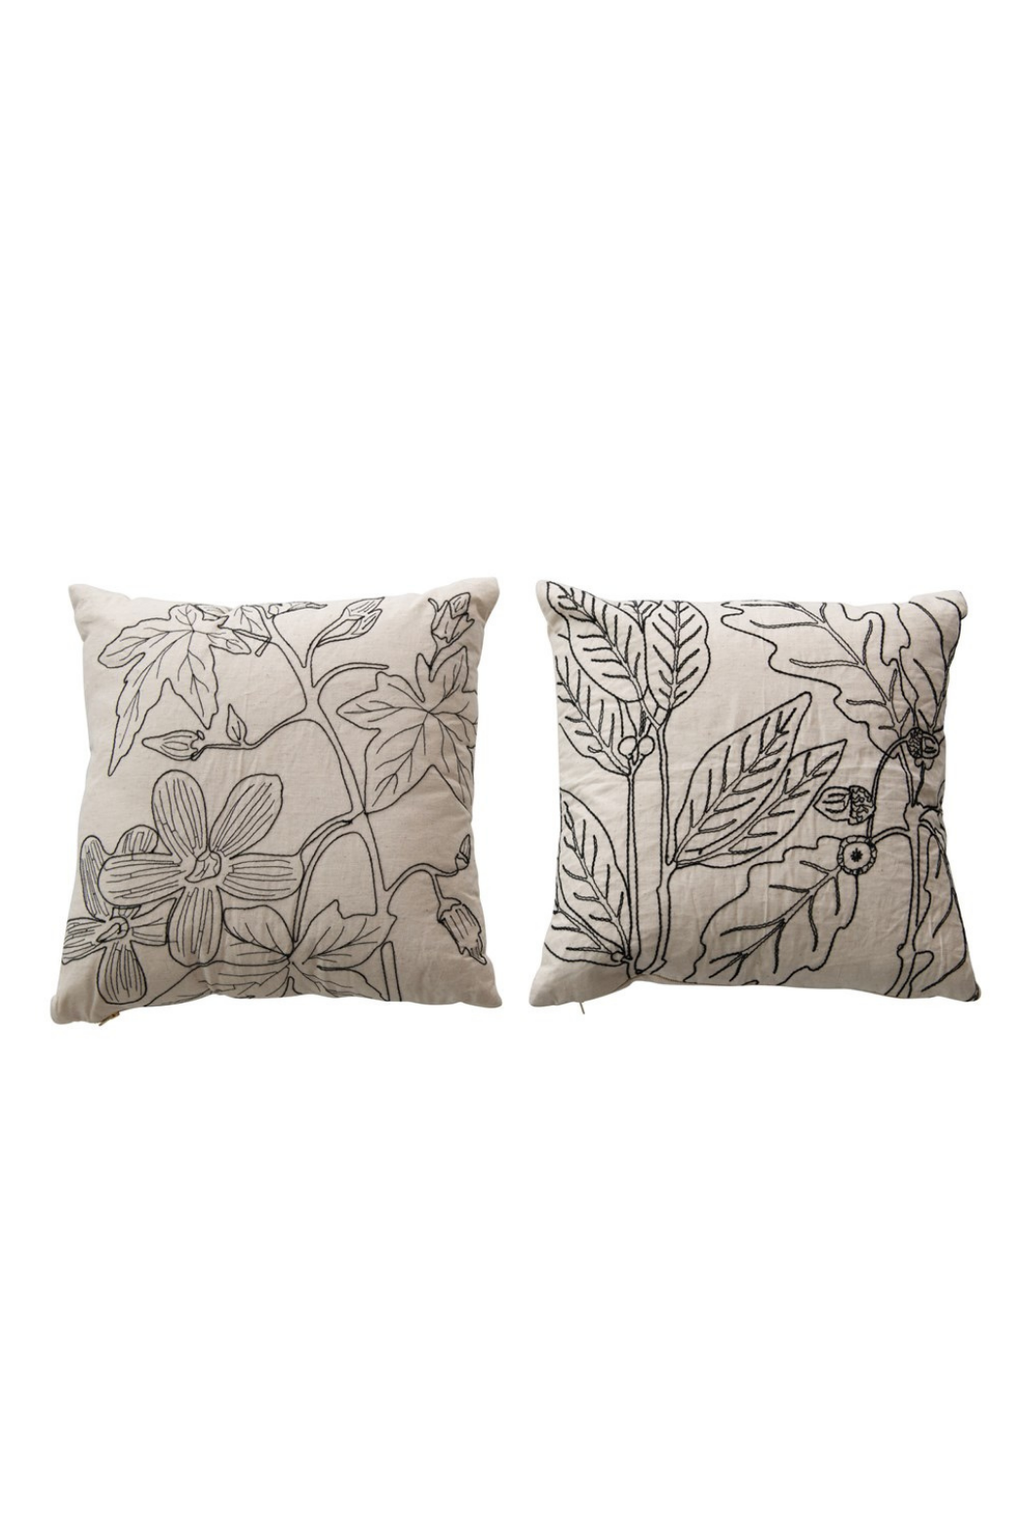 Creative Co-op Black + Cream Botanical Embroidered Pillows